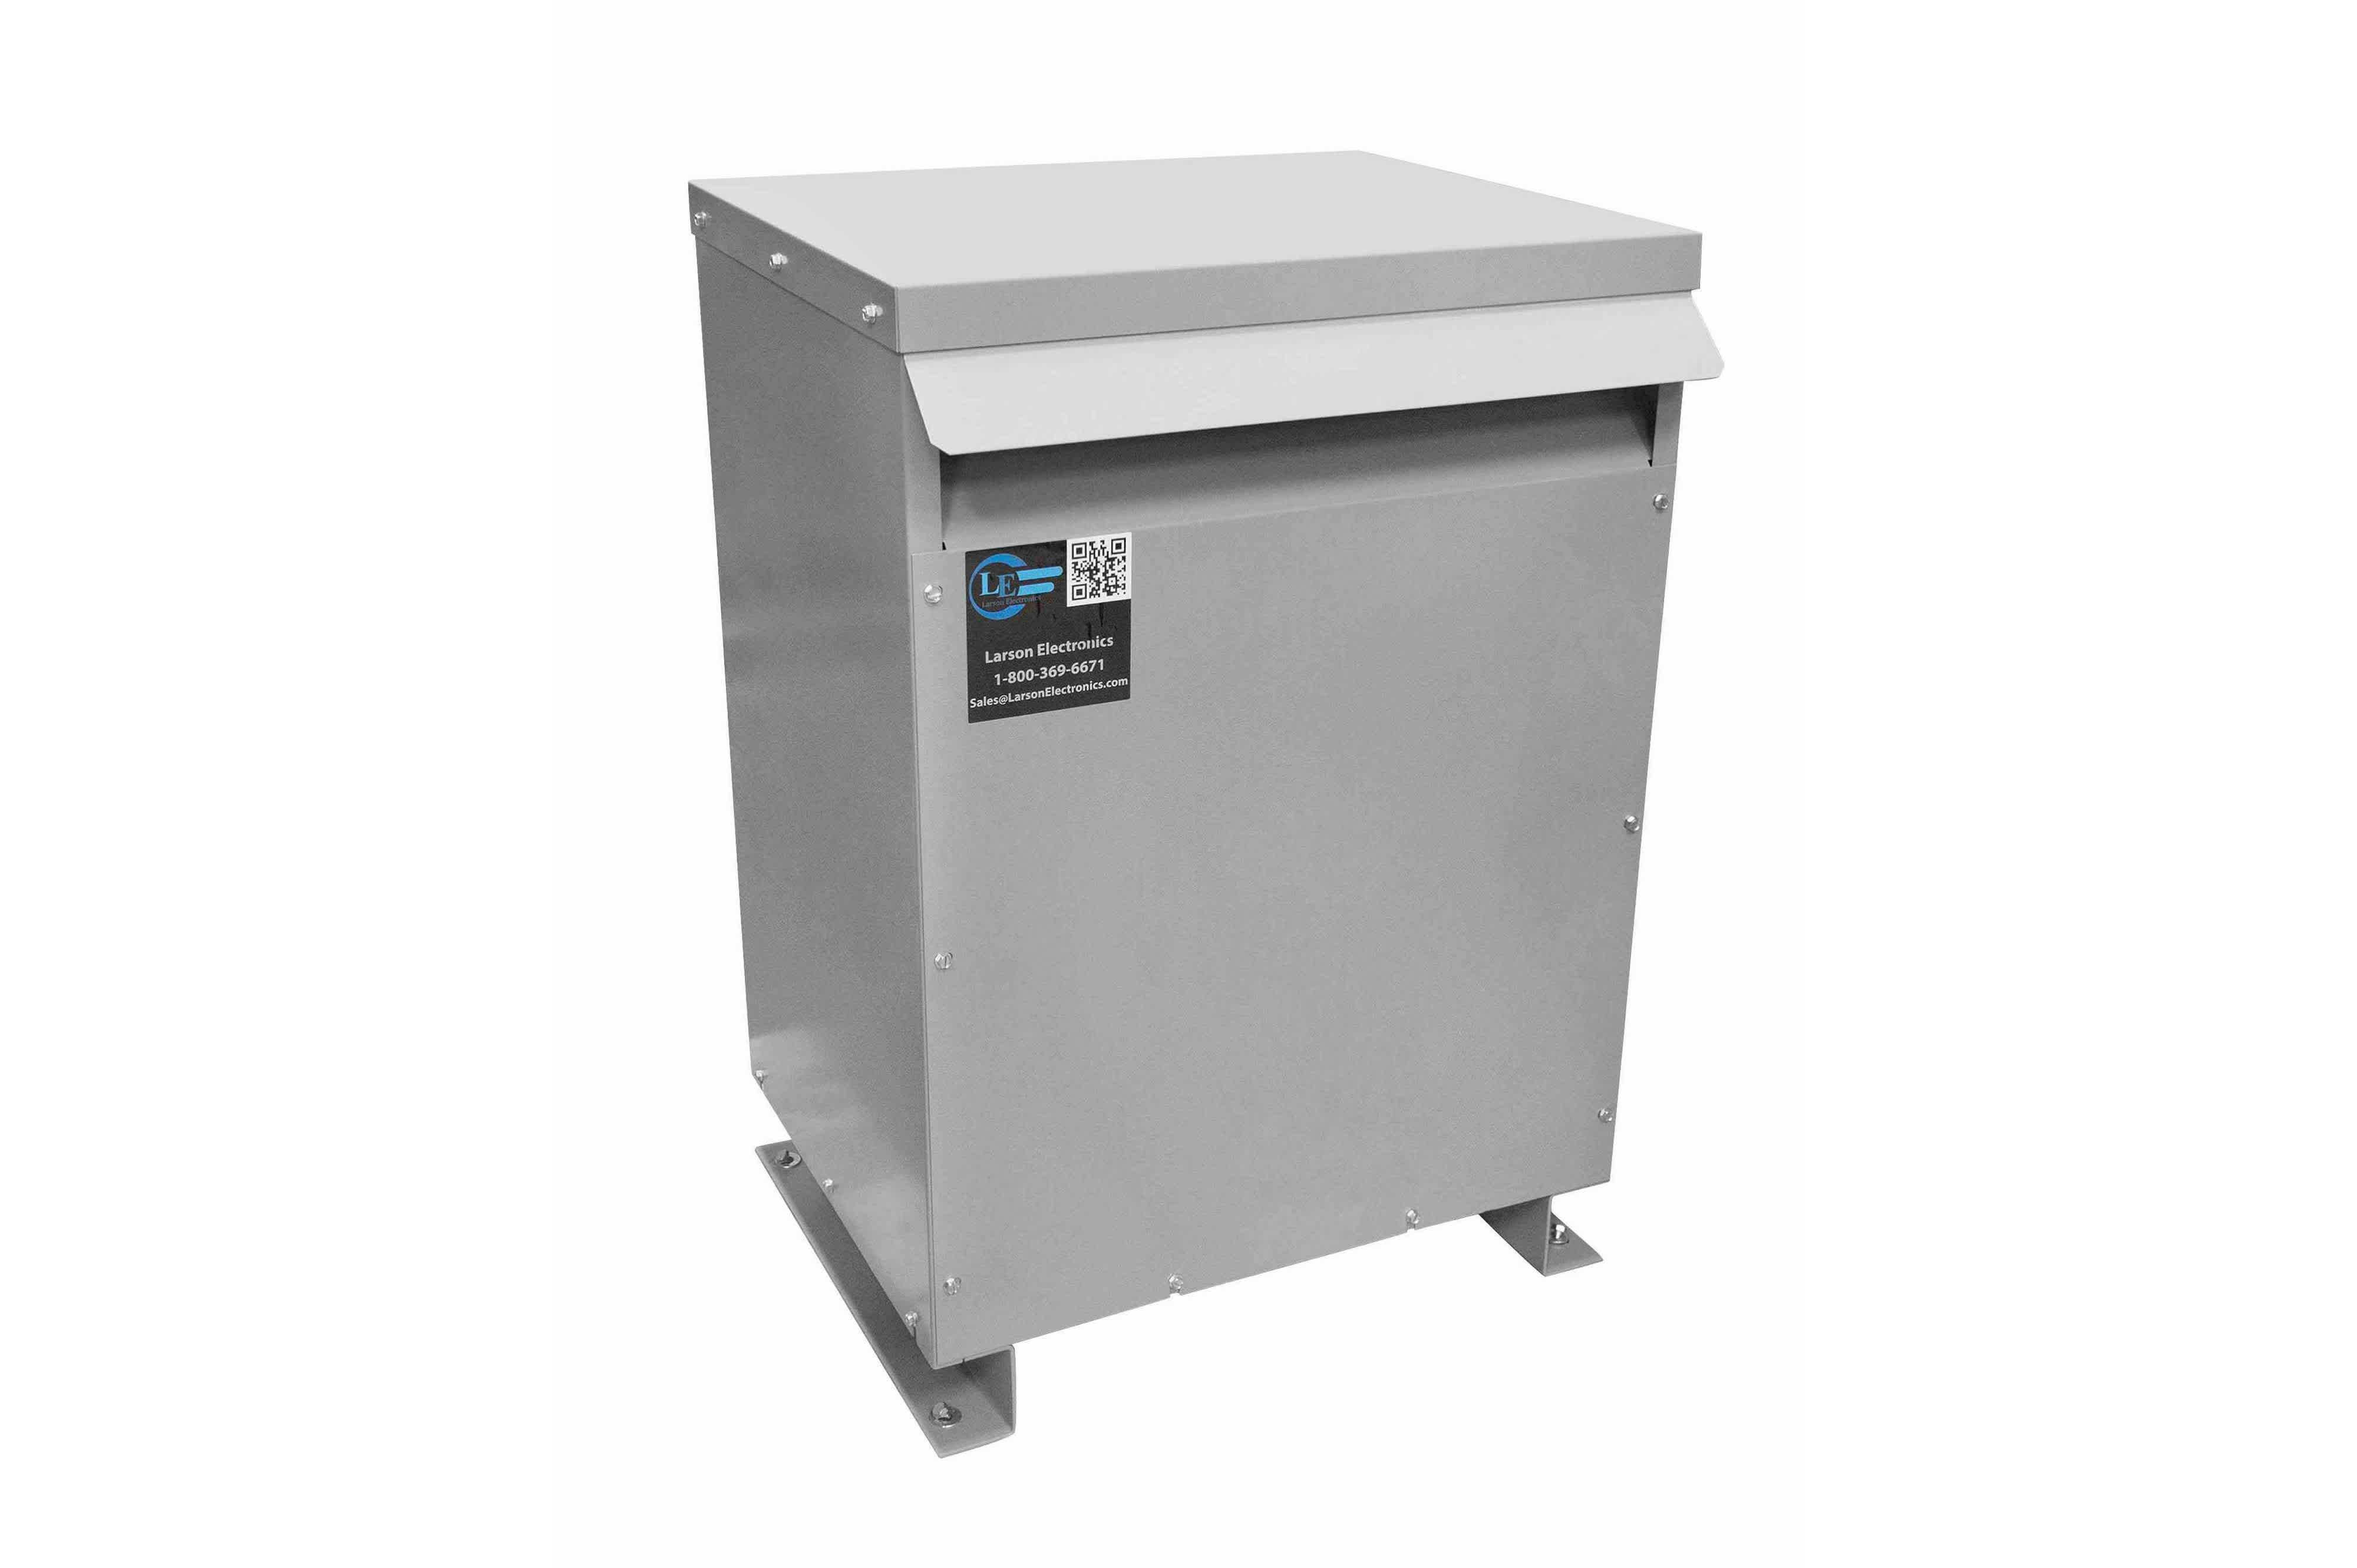 18 kVA 3PH Isolation Transformer, 480V Delta Primary, 575V Delta Secondary, N3R, Ventilated, 60 Hz